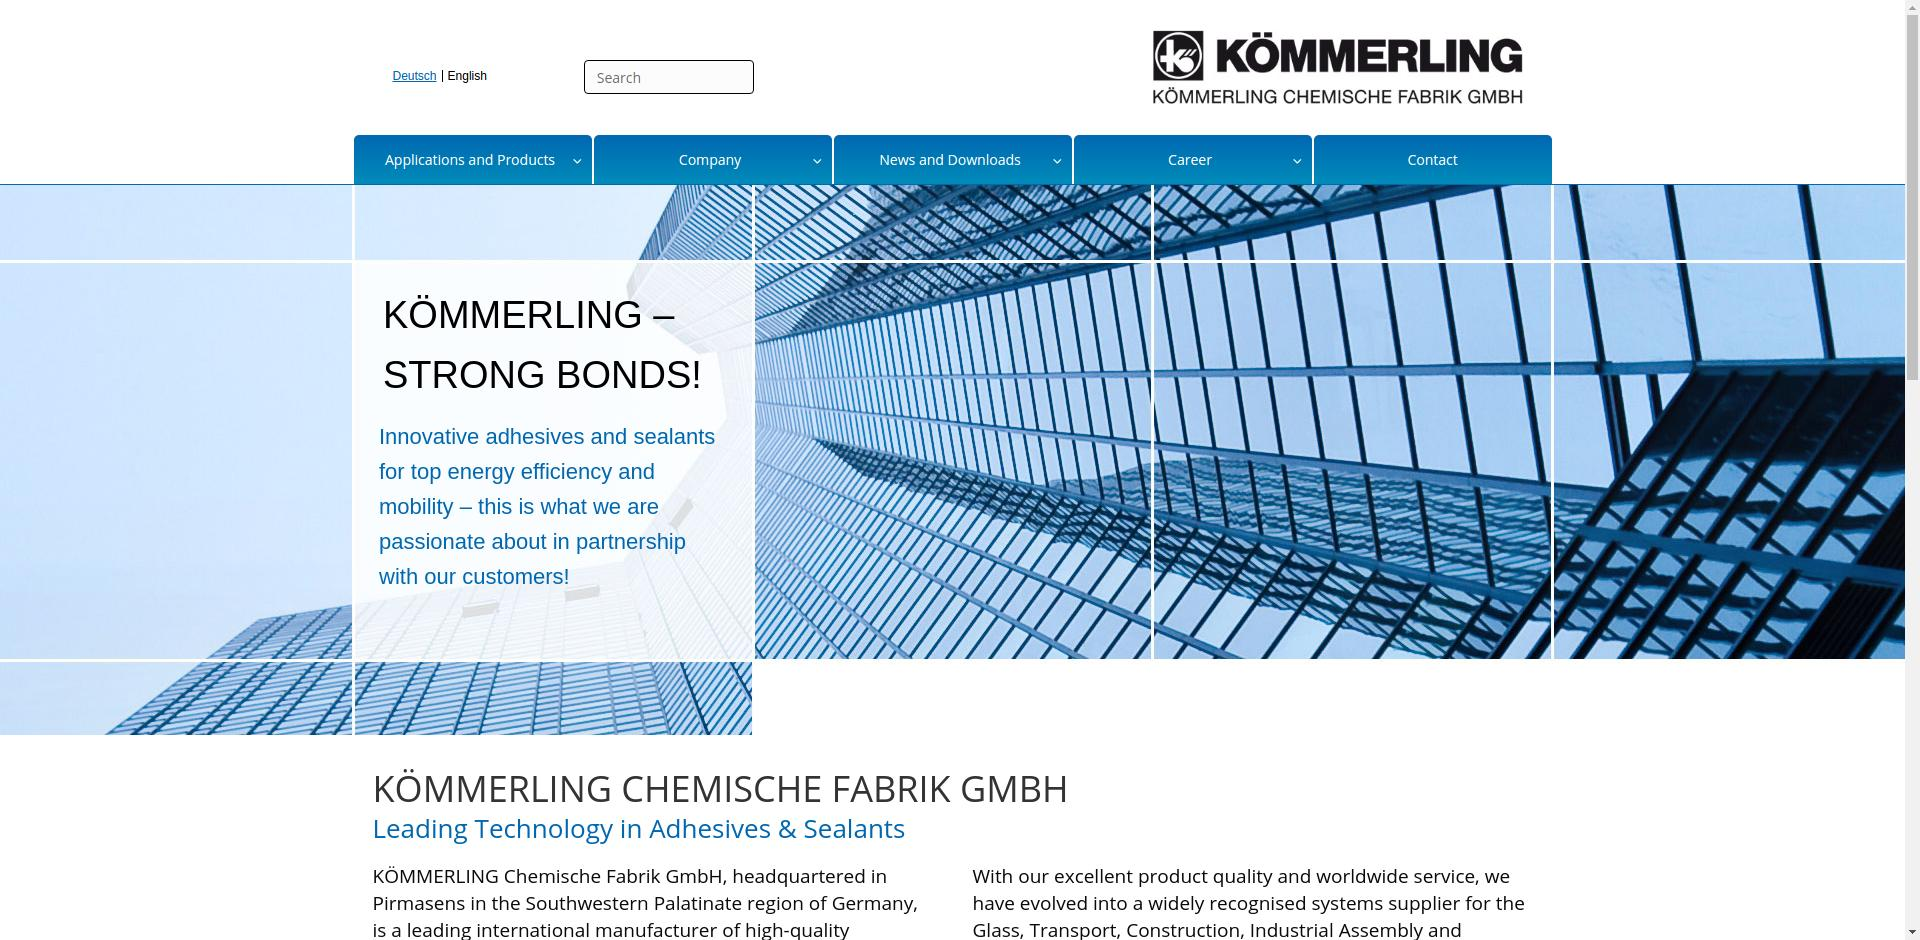 Kommerling company profile - Office locations, Competitors ...